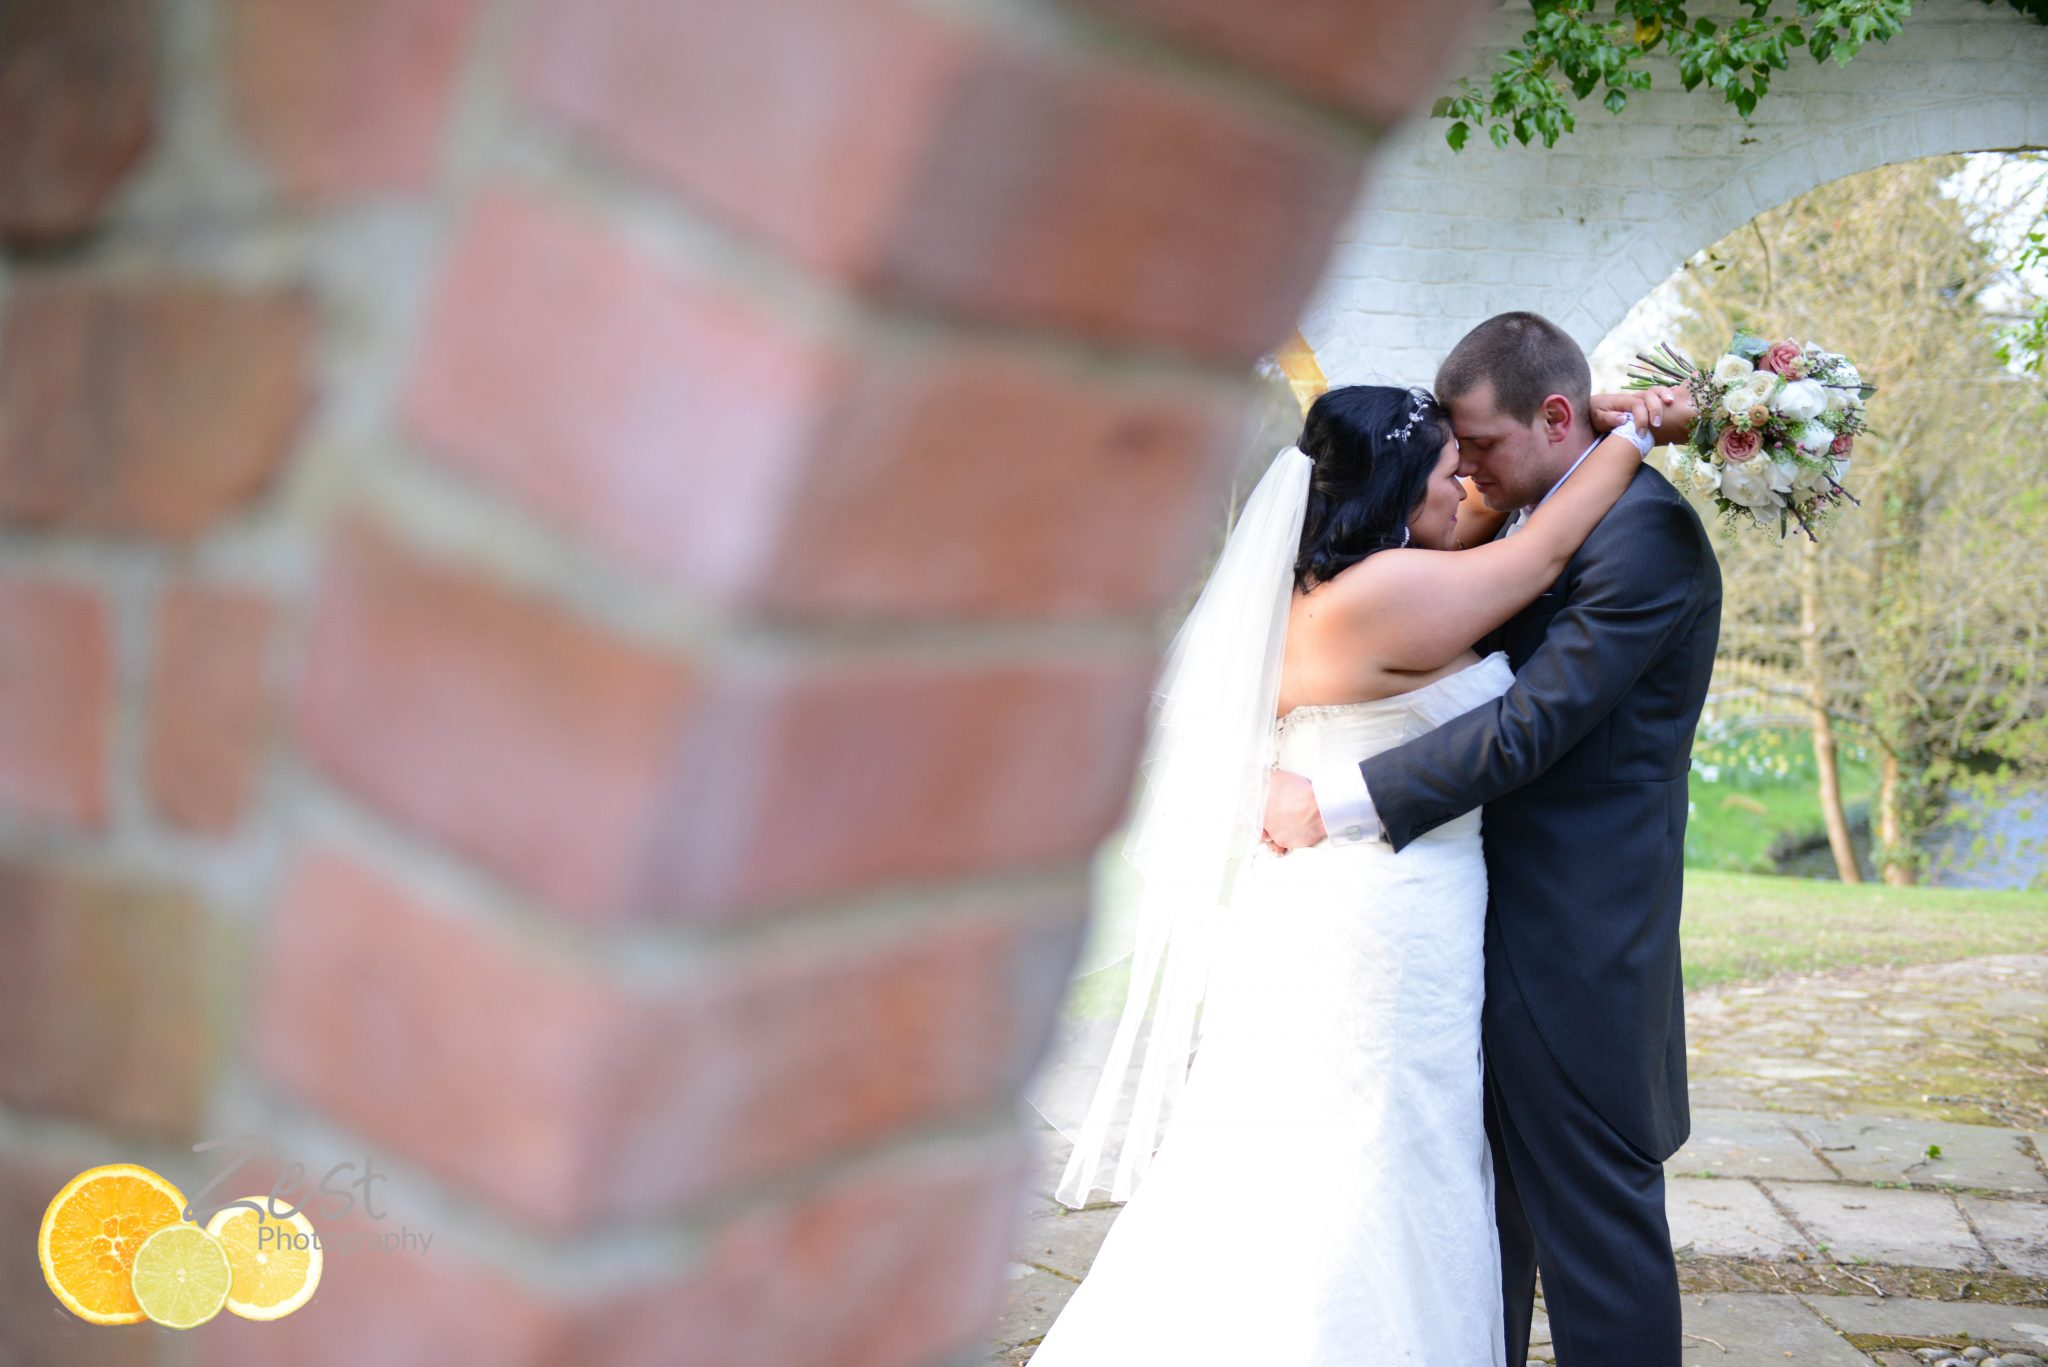 wedding photography taken at ghyll manor